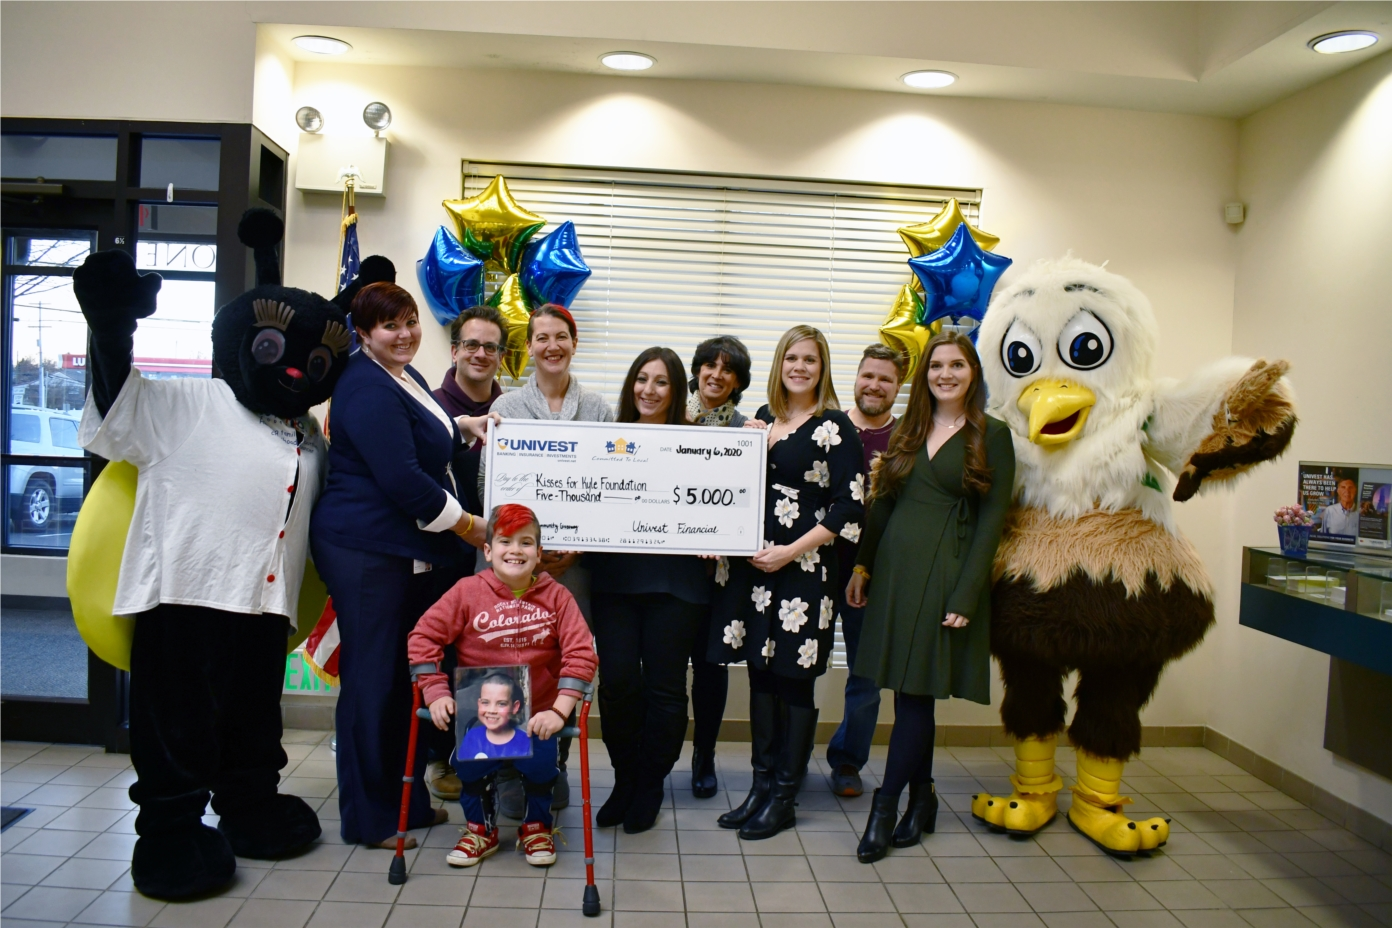 Each year, Univest hosts the Caring for Community Giveaway which asks people to nominate deserving nonprofits. The winner in 2019 was the Kisses for Kyle Foundation.